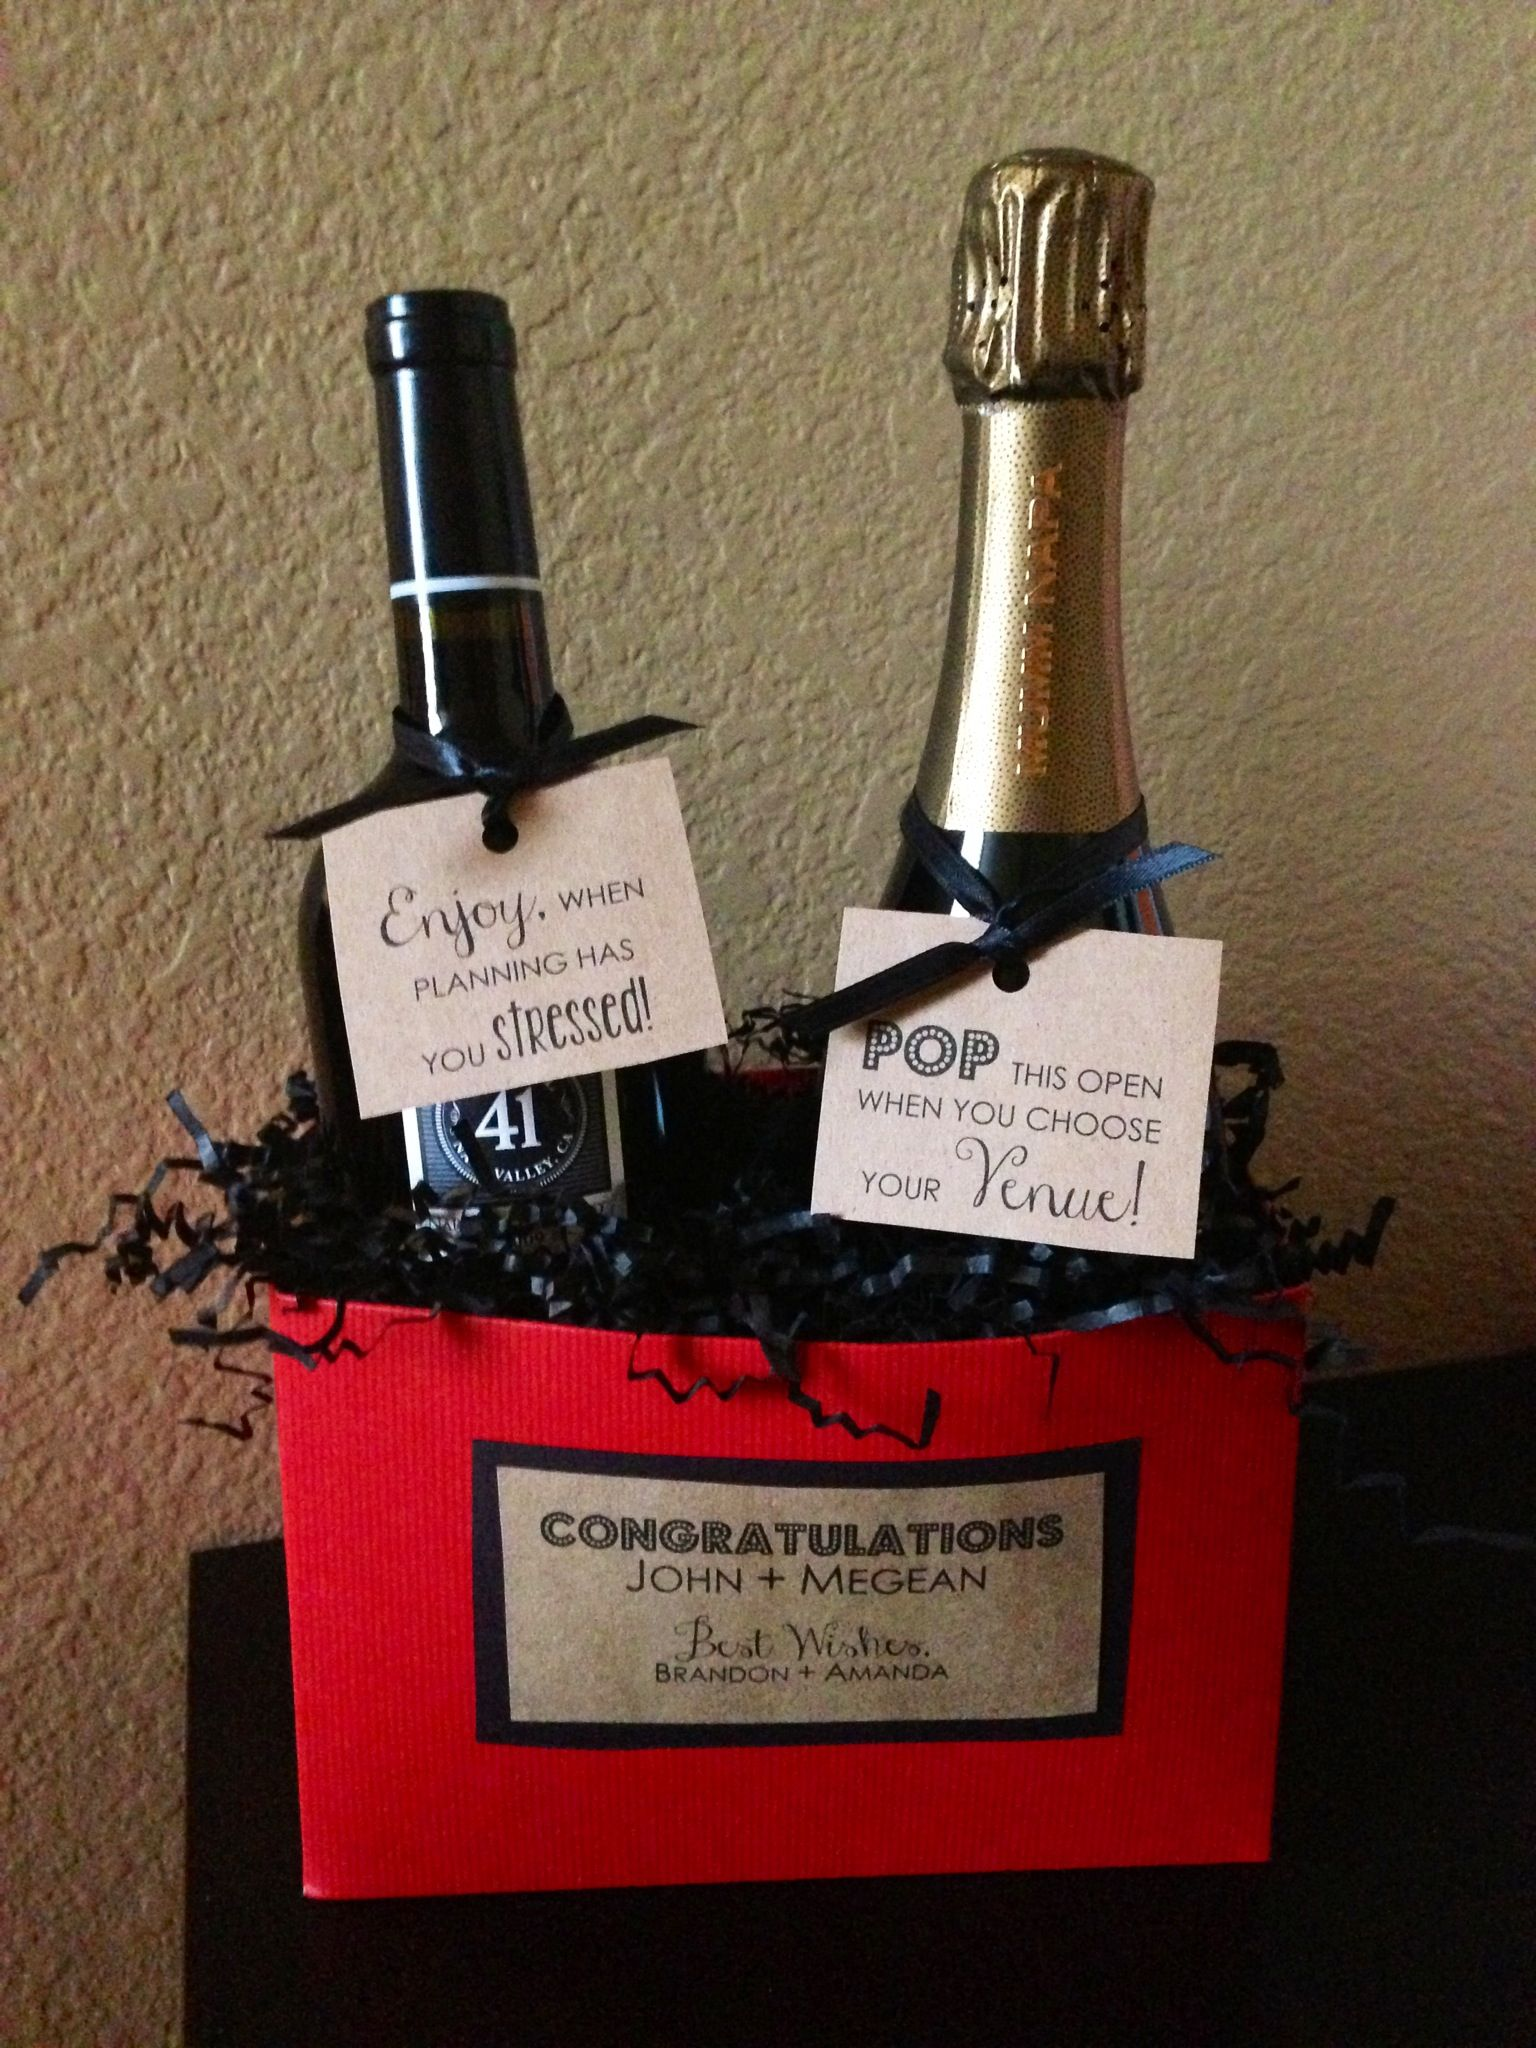 I Made This For Friends As An Engagement Gift A Bottle Of Wine To Open When Wedding Planning Starts To Get Stress Easy Engagement Gifts Engagement Gifts Gifts